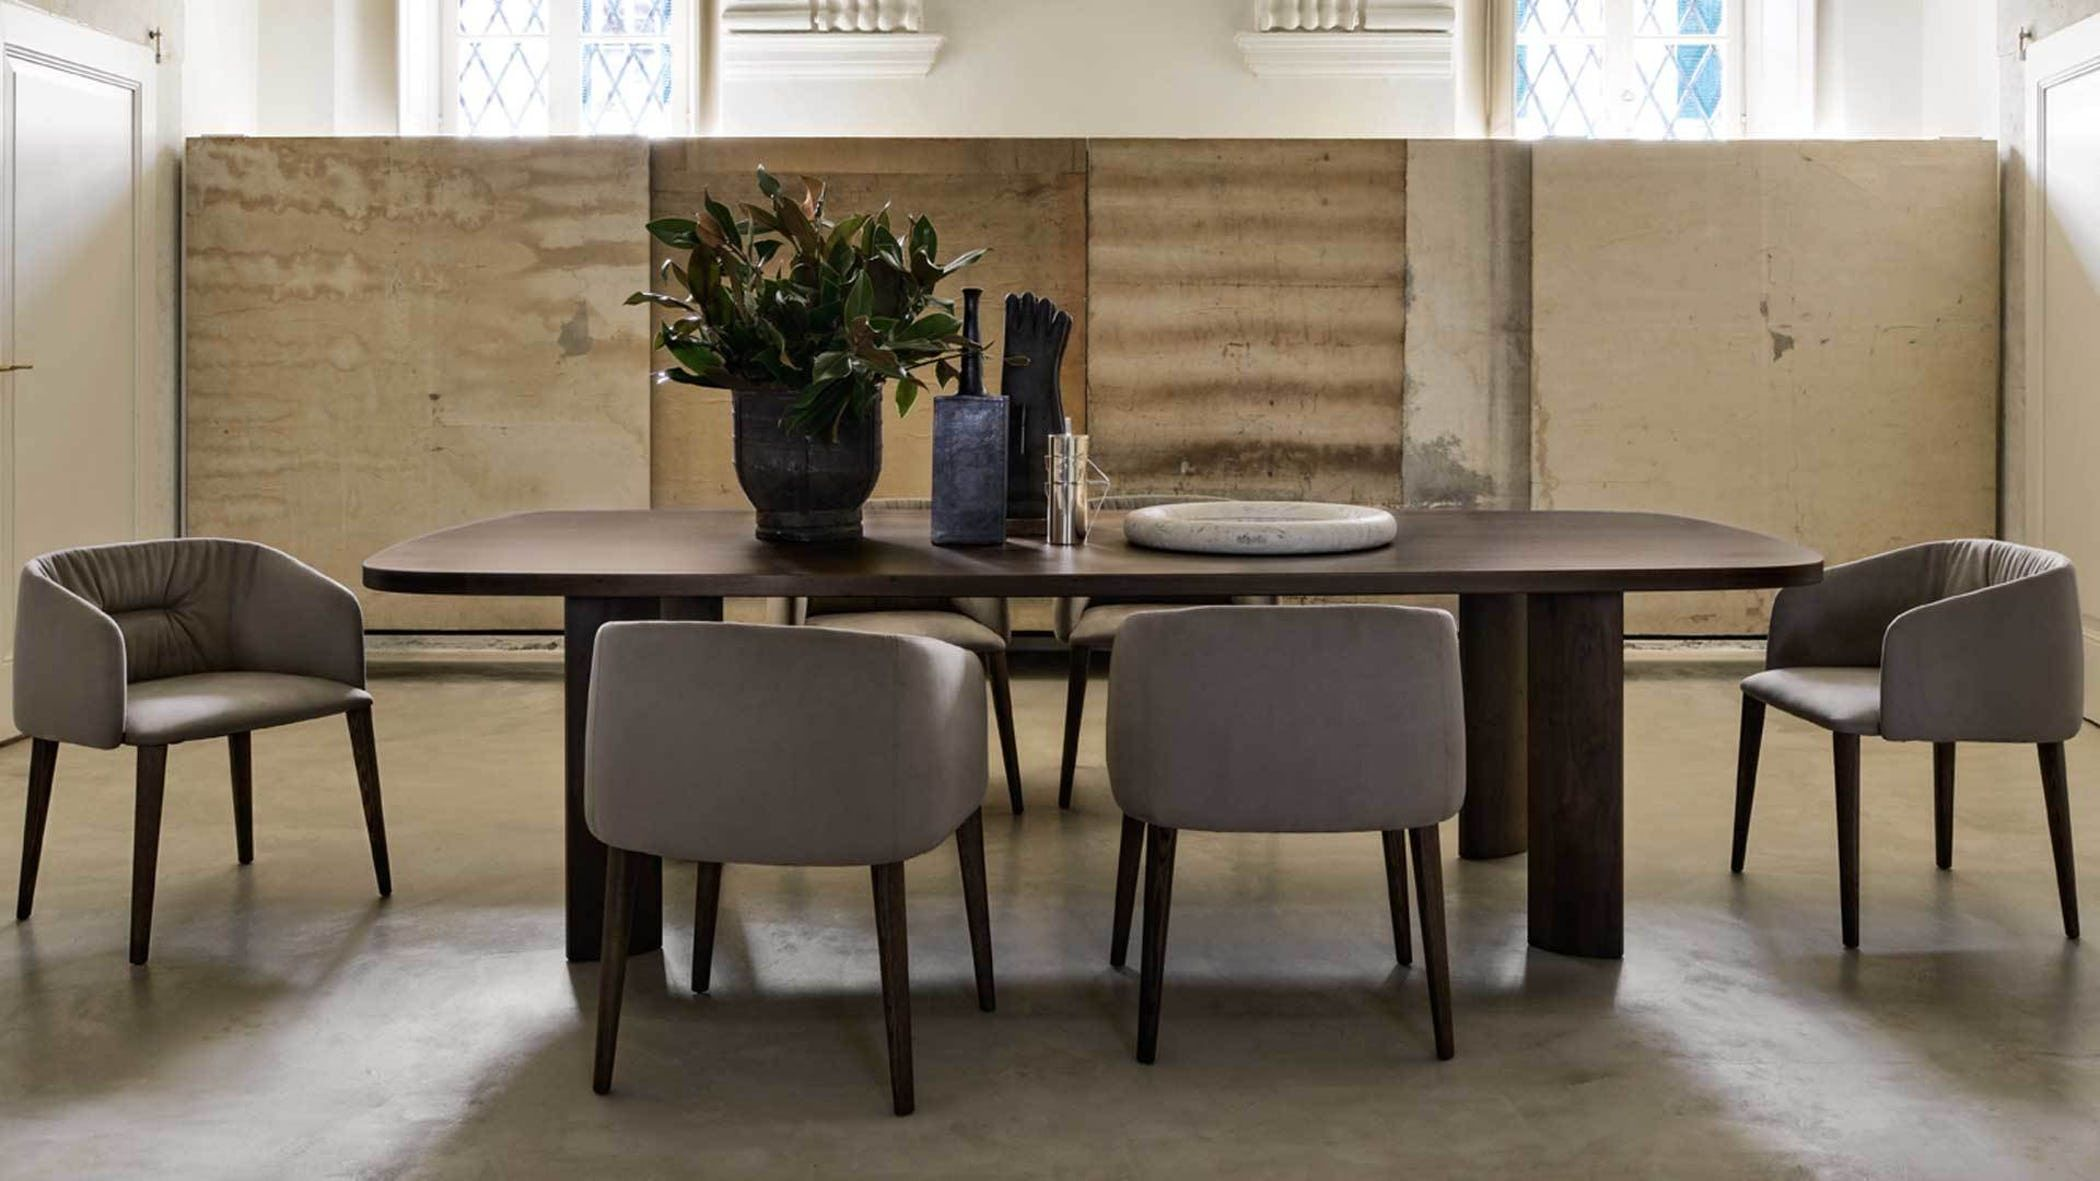 Sofy Armchair Dining Chairs Contemporary Furniture Design